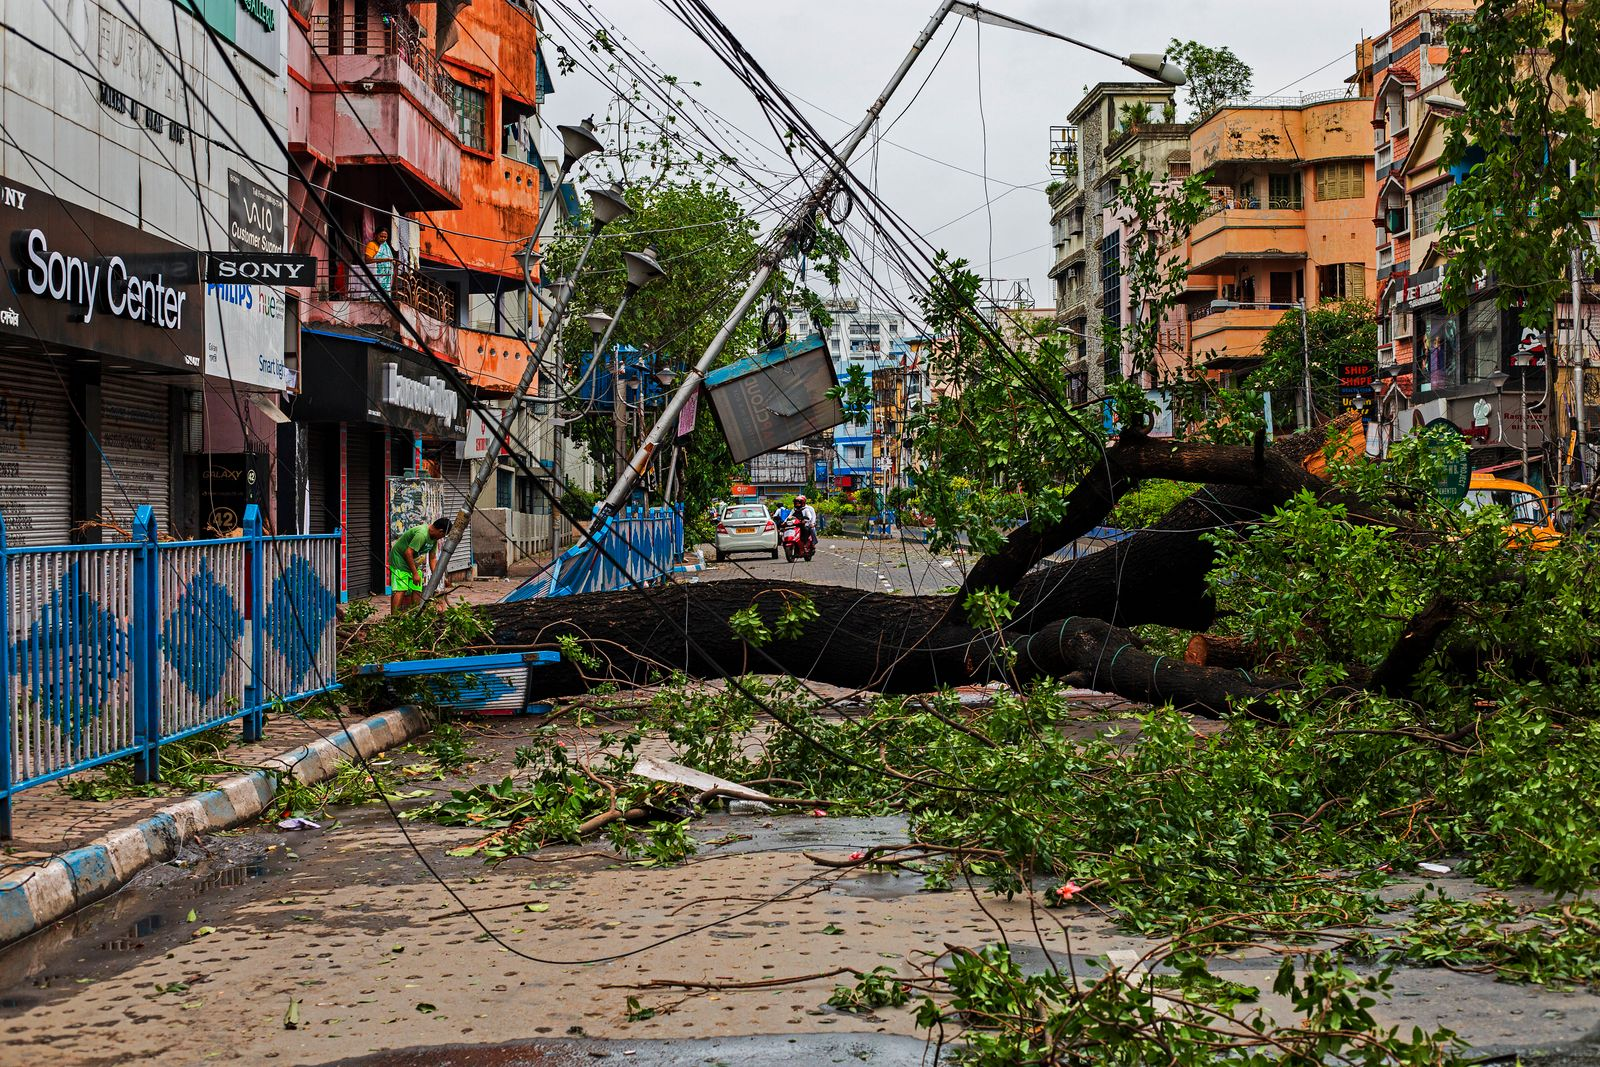 Cyclone disaster in Kolkata Amphan Cyclone effectively made a landfall in Kolkata in late afternoon lasted for four hou